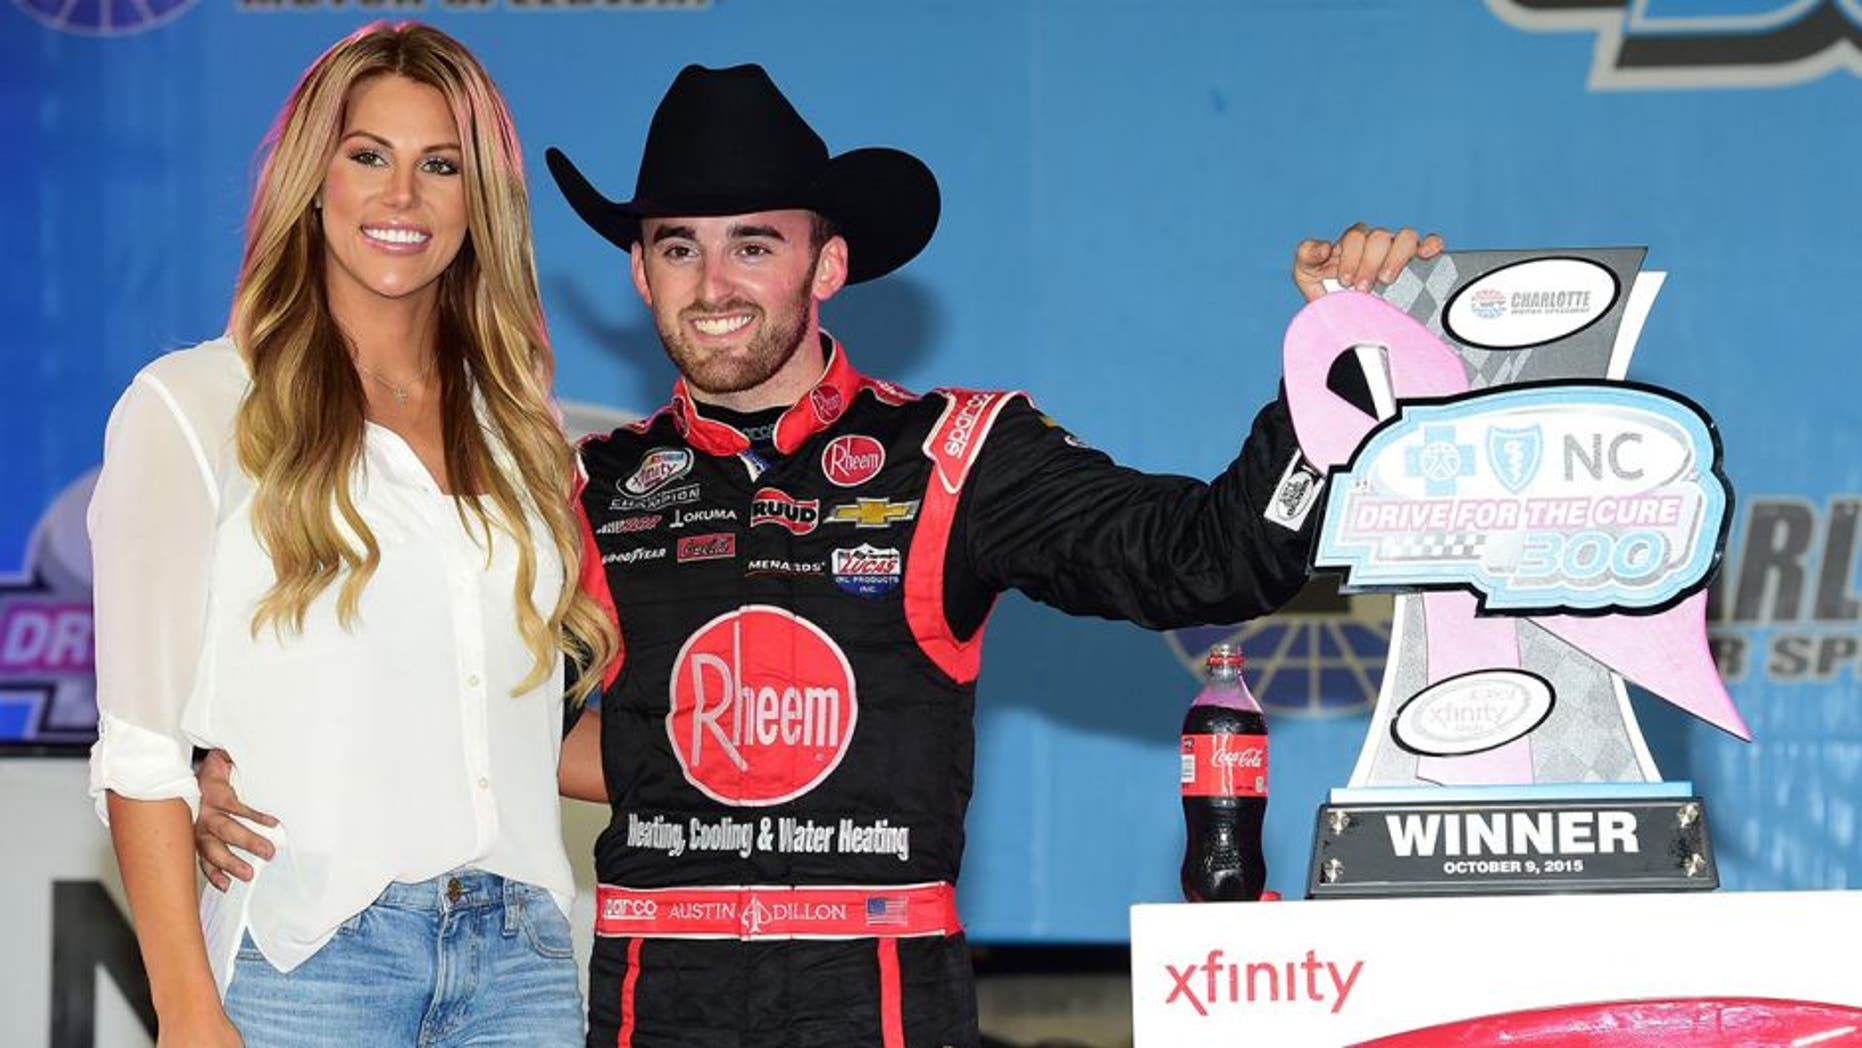 CHARLOTTE, NC - OCTOBER 09: Austin Dillon, driver of the #33 Rheem Chevrolet, celebrates in victory lane with his girlfriend and Titans cheerleader Whitney Ward after winning the NASCAR XFINITY Series Drive for the Cure 300 at Charlotte Motor Speedway on October 9, 2015 in Charlotte, North Carolina. (Photo by Jared C. Tilton/NASCAR via Getty Images)